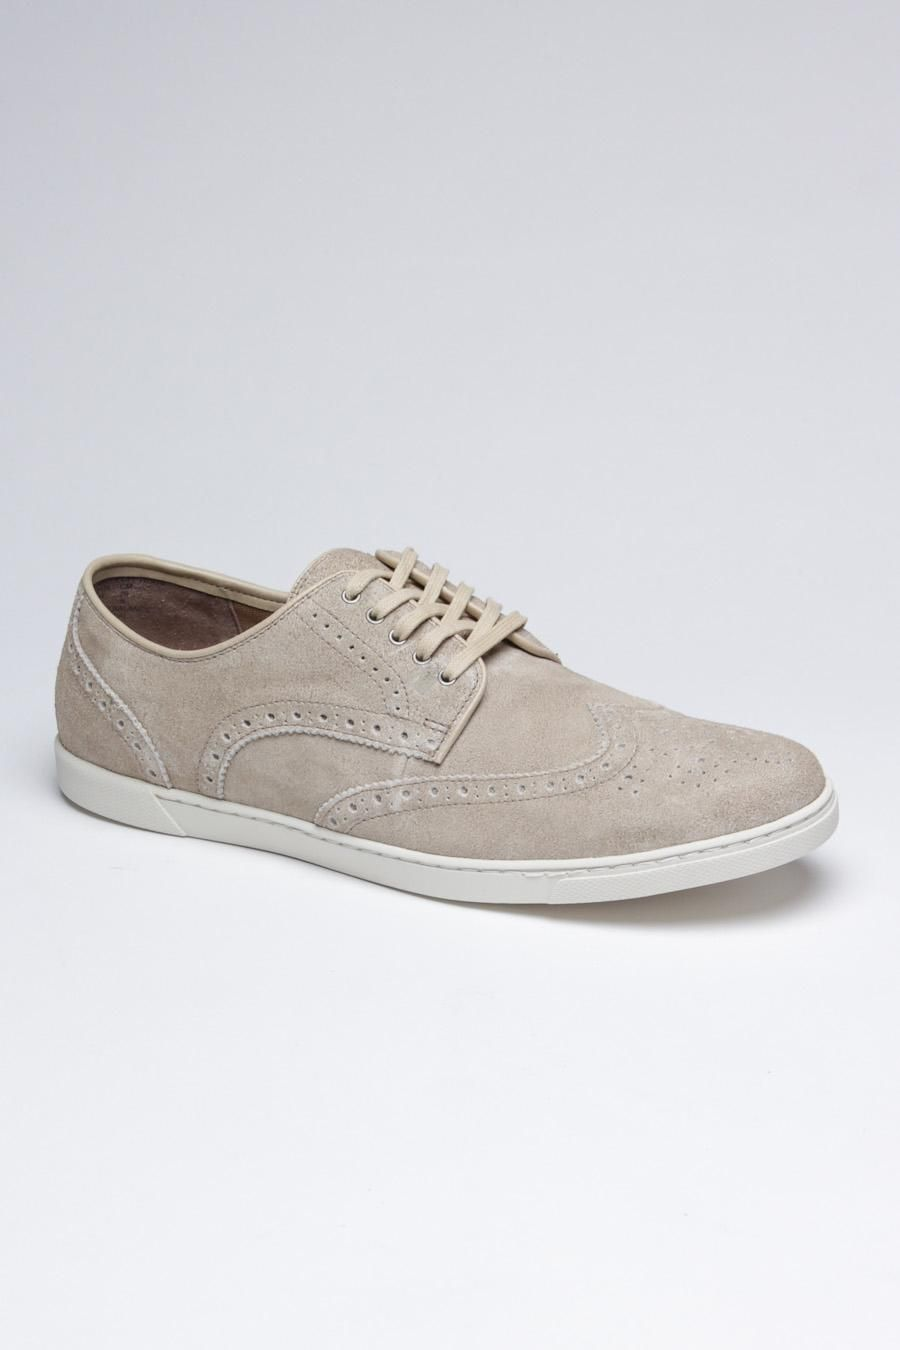 Official Hush Puppies Site - Shop casual shoes for women & comfortable dress shoes for women. Browse flats, boots, heels & more. Free shipping!